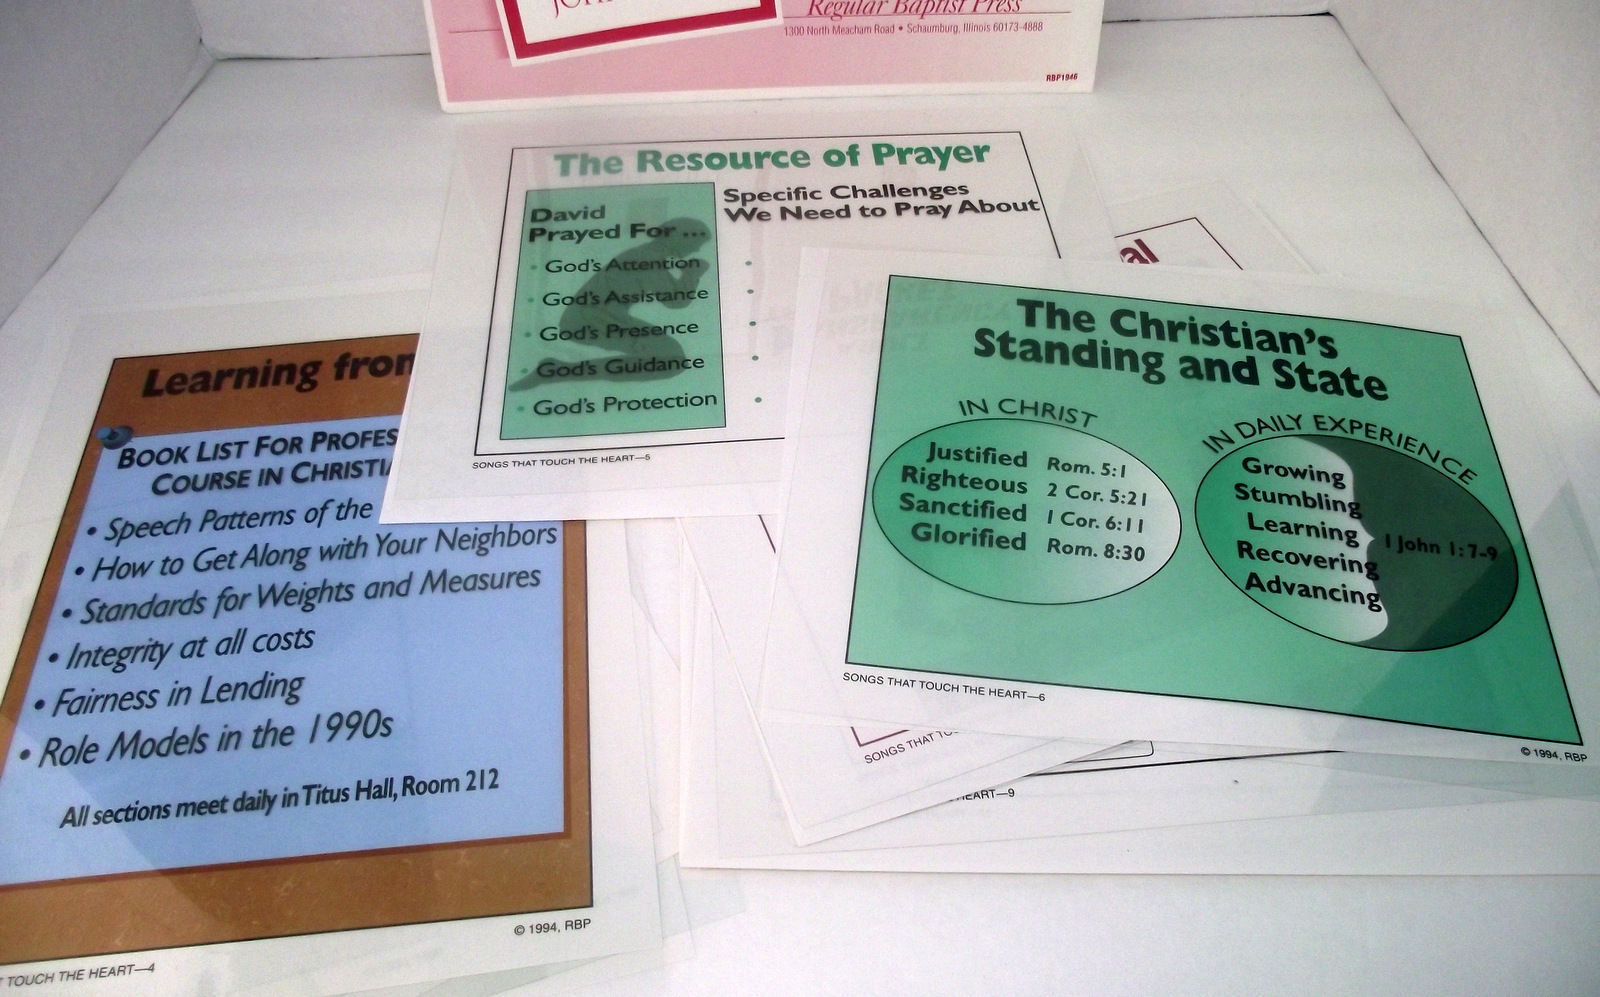 Transparency Songs Touch Heart Psalms Bible Lesson Overhead Baptist Press NEW